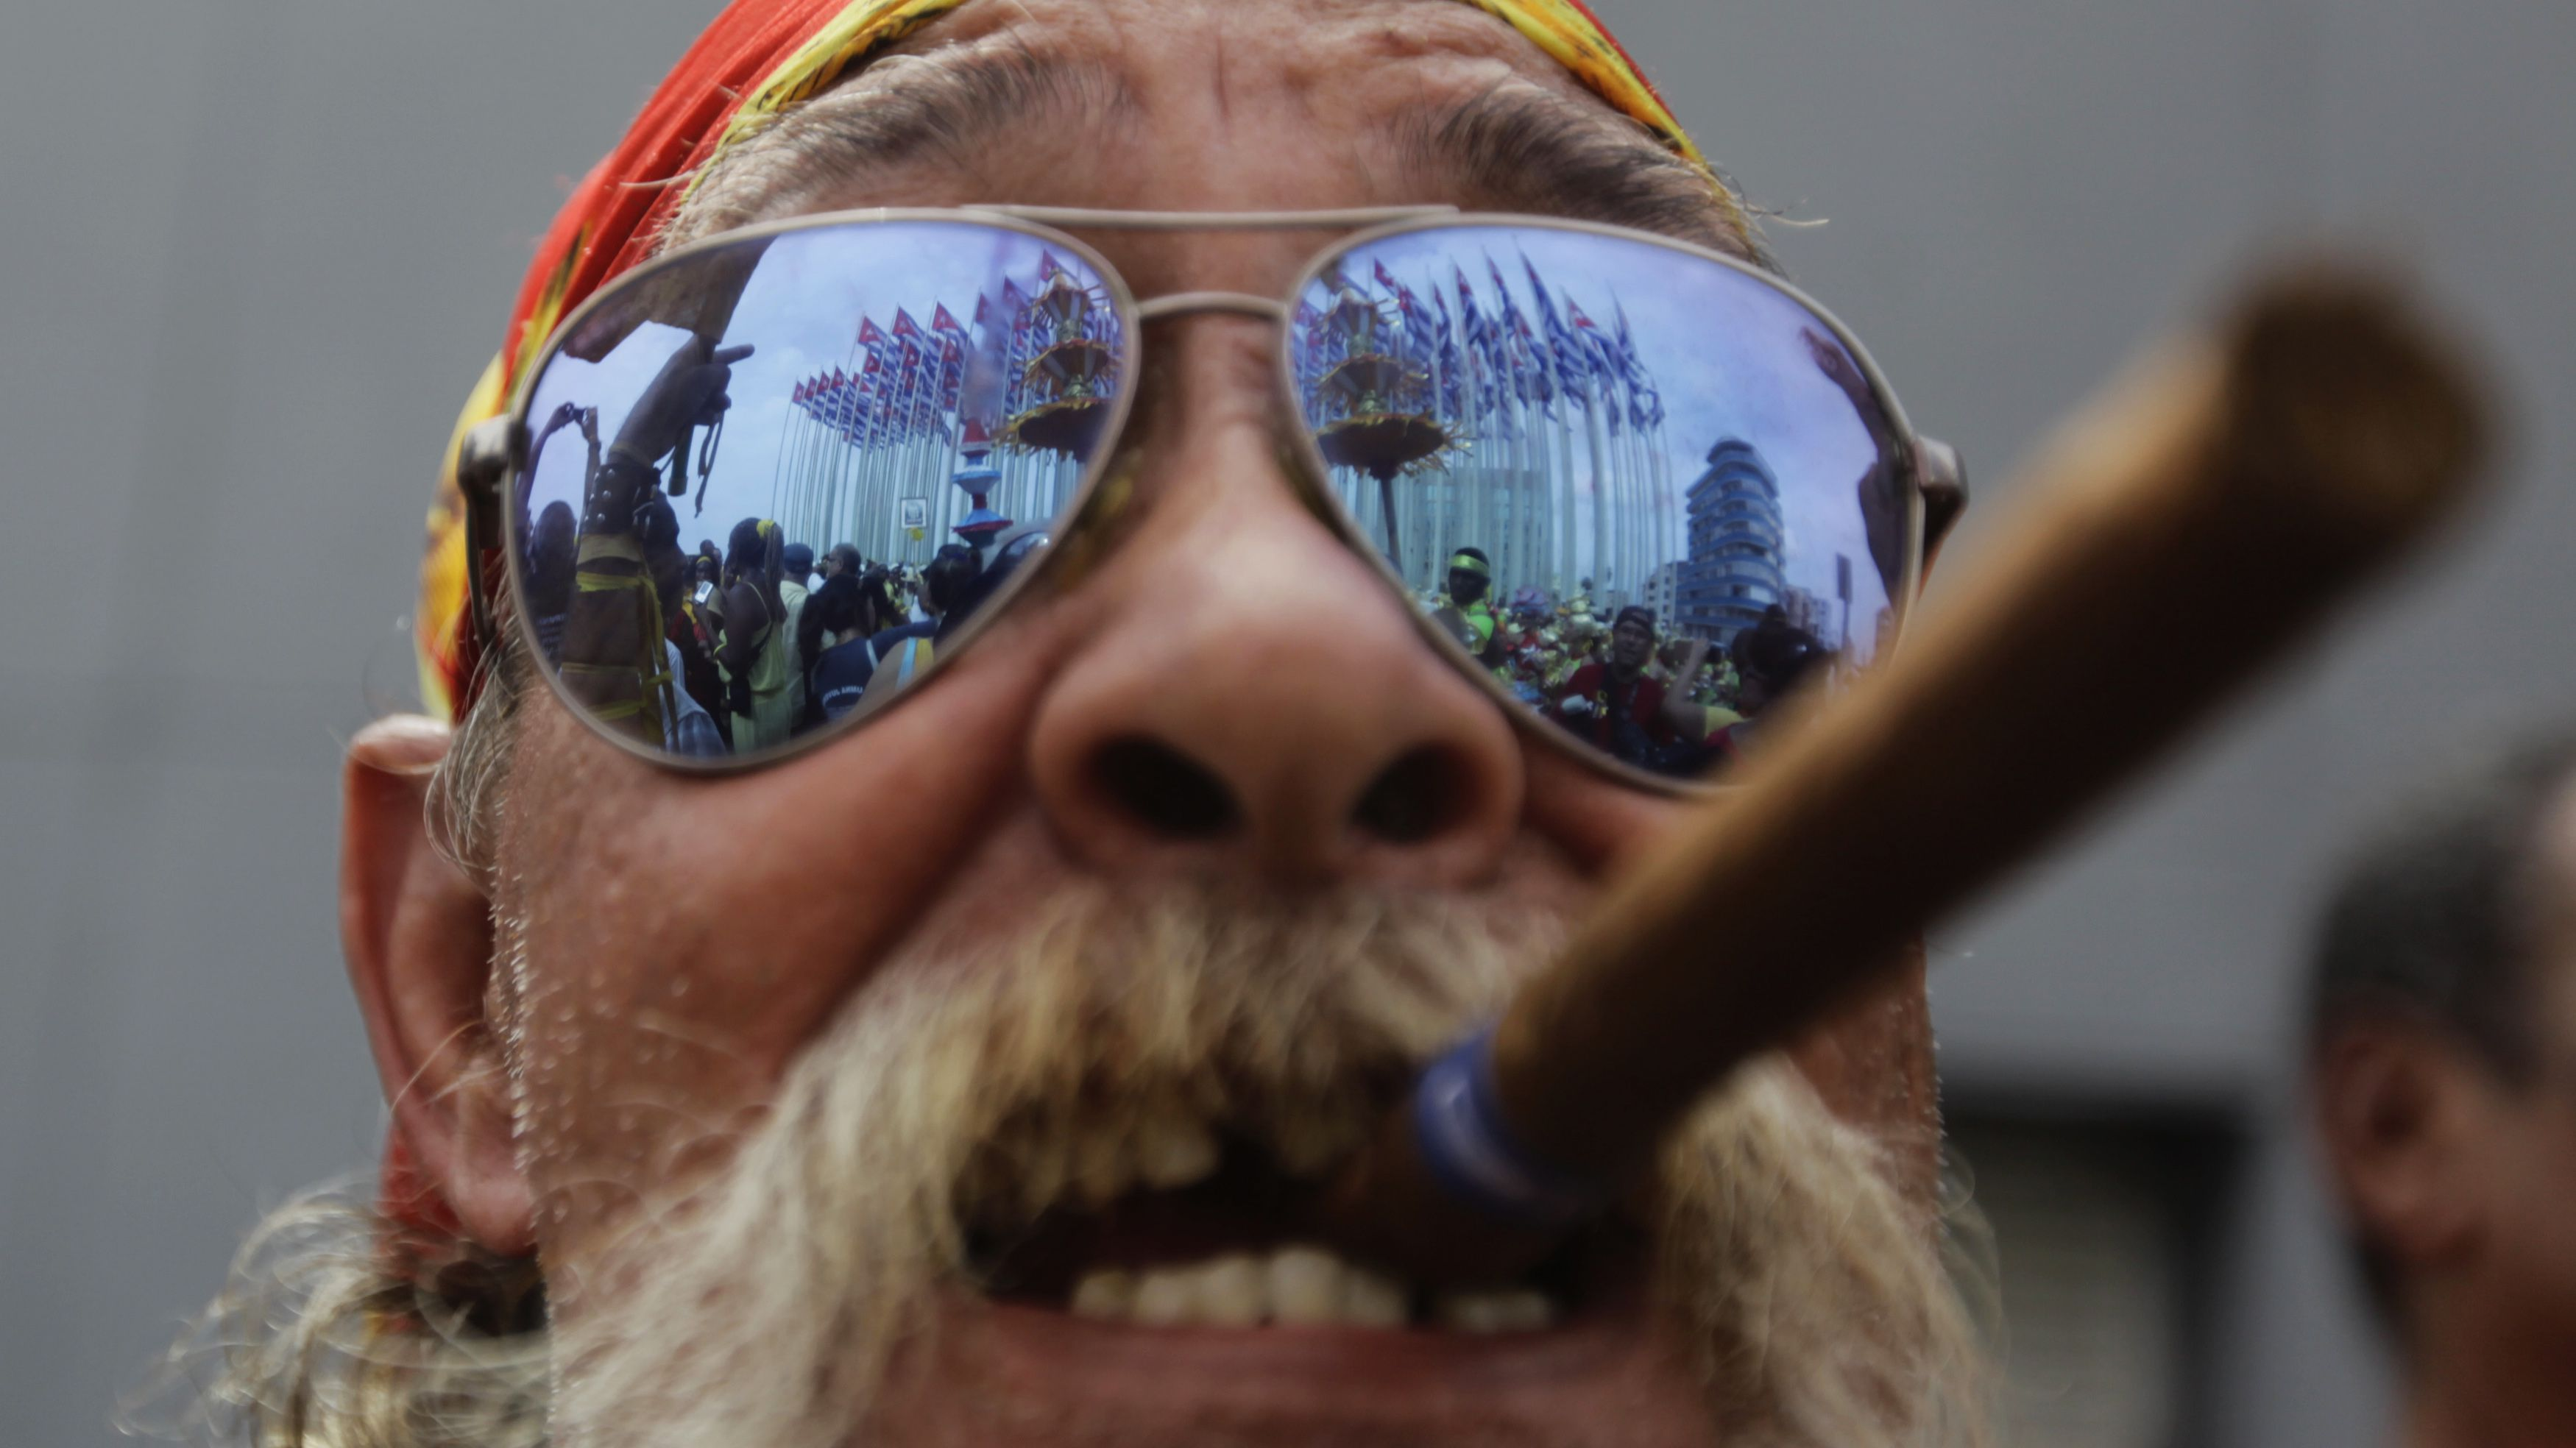 """A man holds a cigar in his mouth during a gathering beside the U.S. Interests Section diplomatic mission in Havana, September 12, 2013. Cuba held a day of protest on Thursday over four intelligence agents imprisoned in the United States, displaying yellow ribbons to show national support for bringing the men home on the 15th anniversary of their arrest in Florida. The men were convicted in 2001 of conspiring to spy on Cuban exile groups and U.S. military activities as part of an espionage ring called the """"Wasp Network."""" REUTERS/Desmond Boylan (CUBA - Tags: POLITICS) - RTX13J1K"""